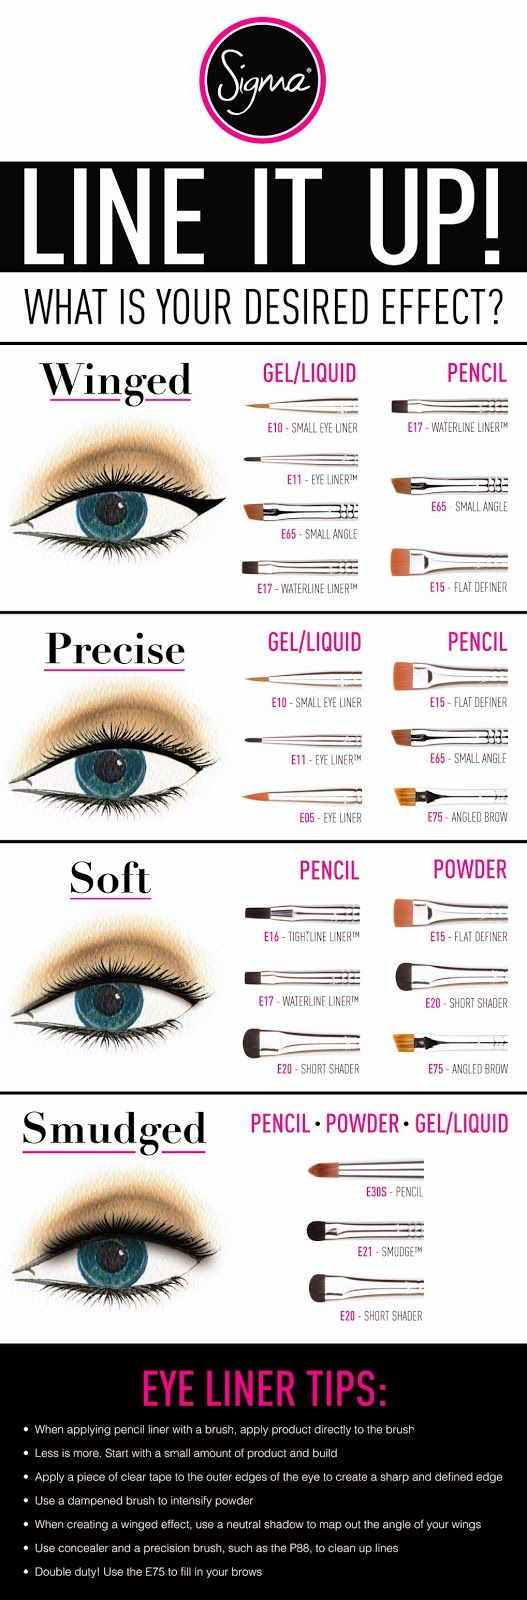 Line It Up! - Guide To Perfect Eye Liner.: